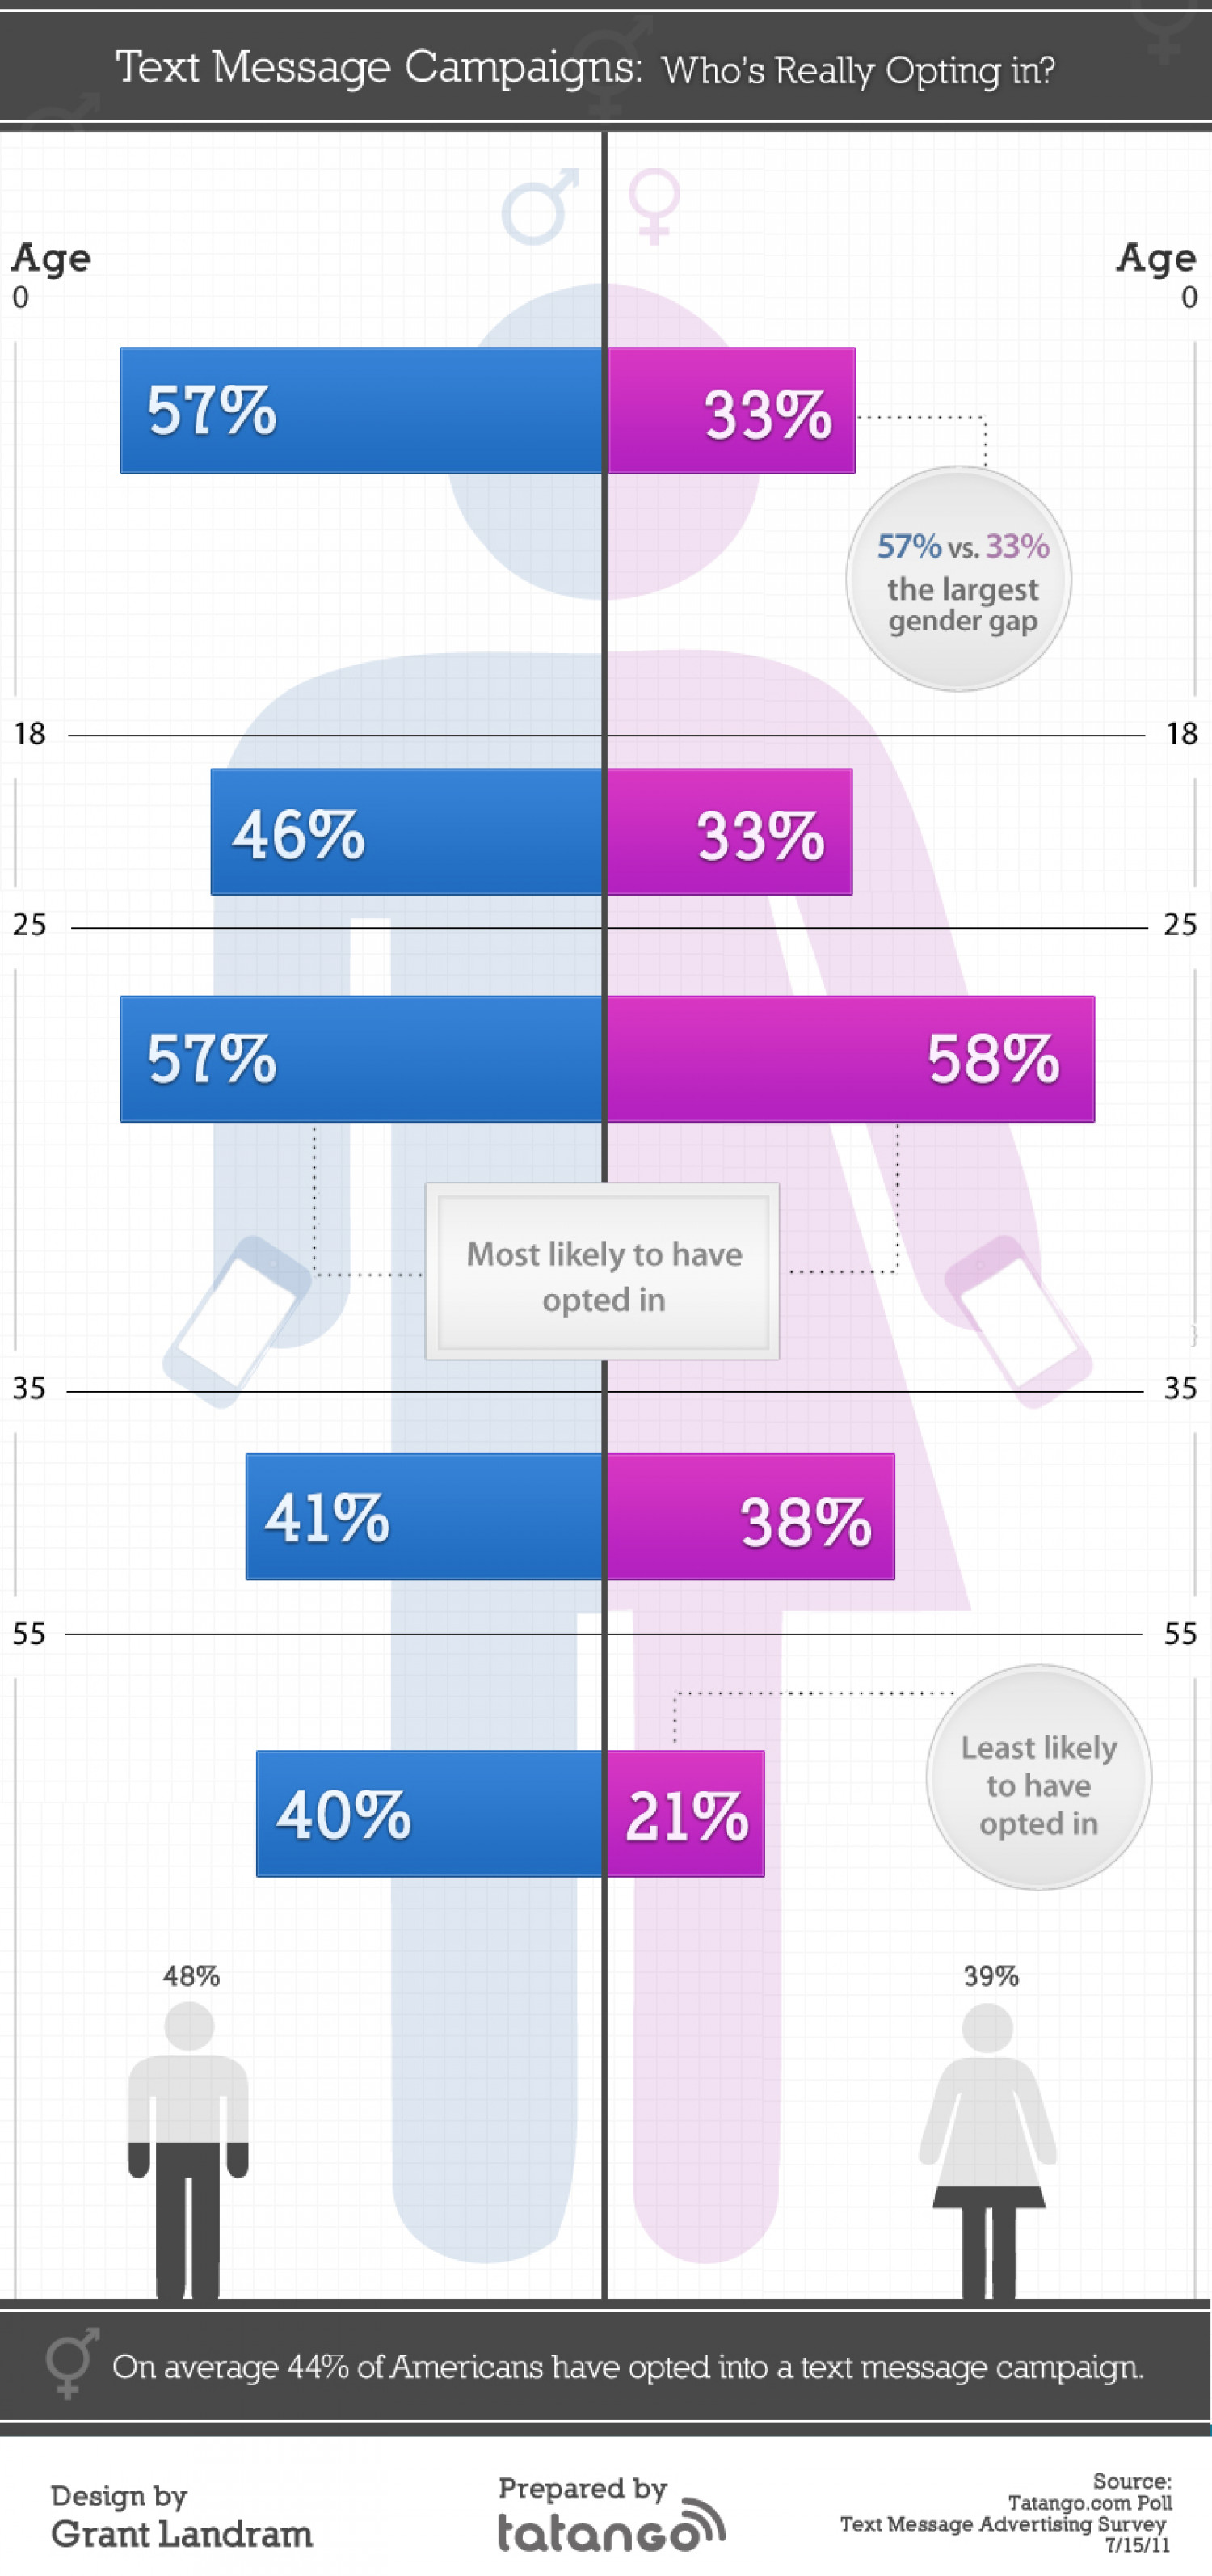 Text Message Campaigns Who's Really Opting In? Infographic